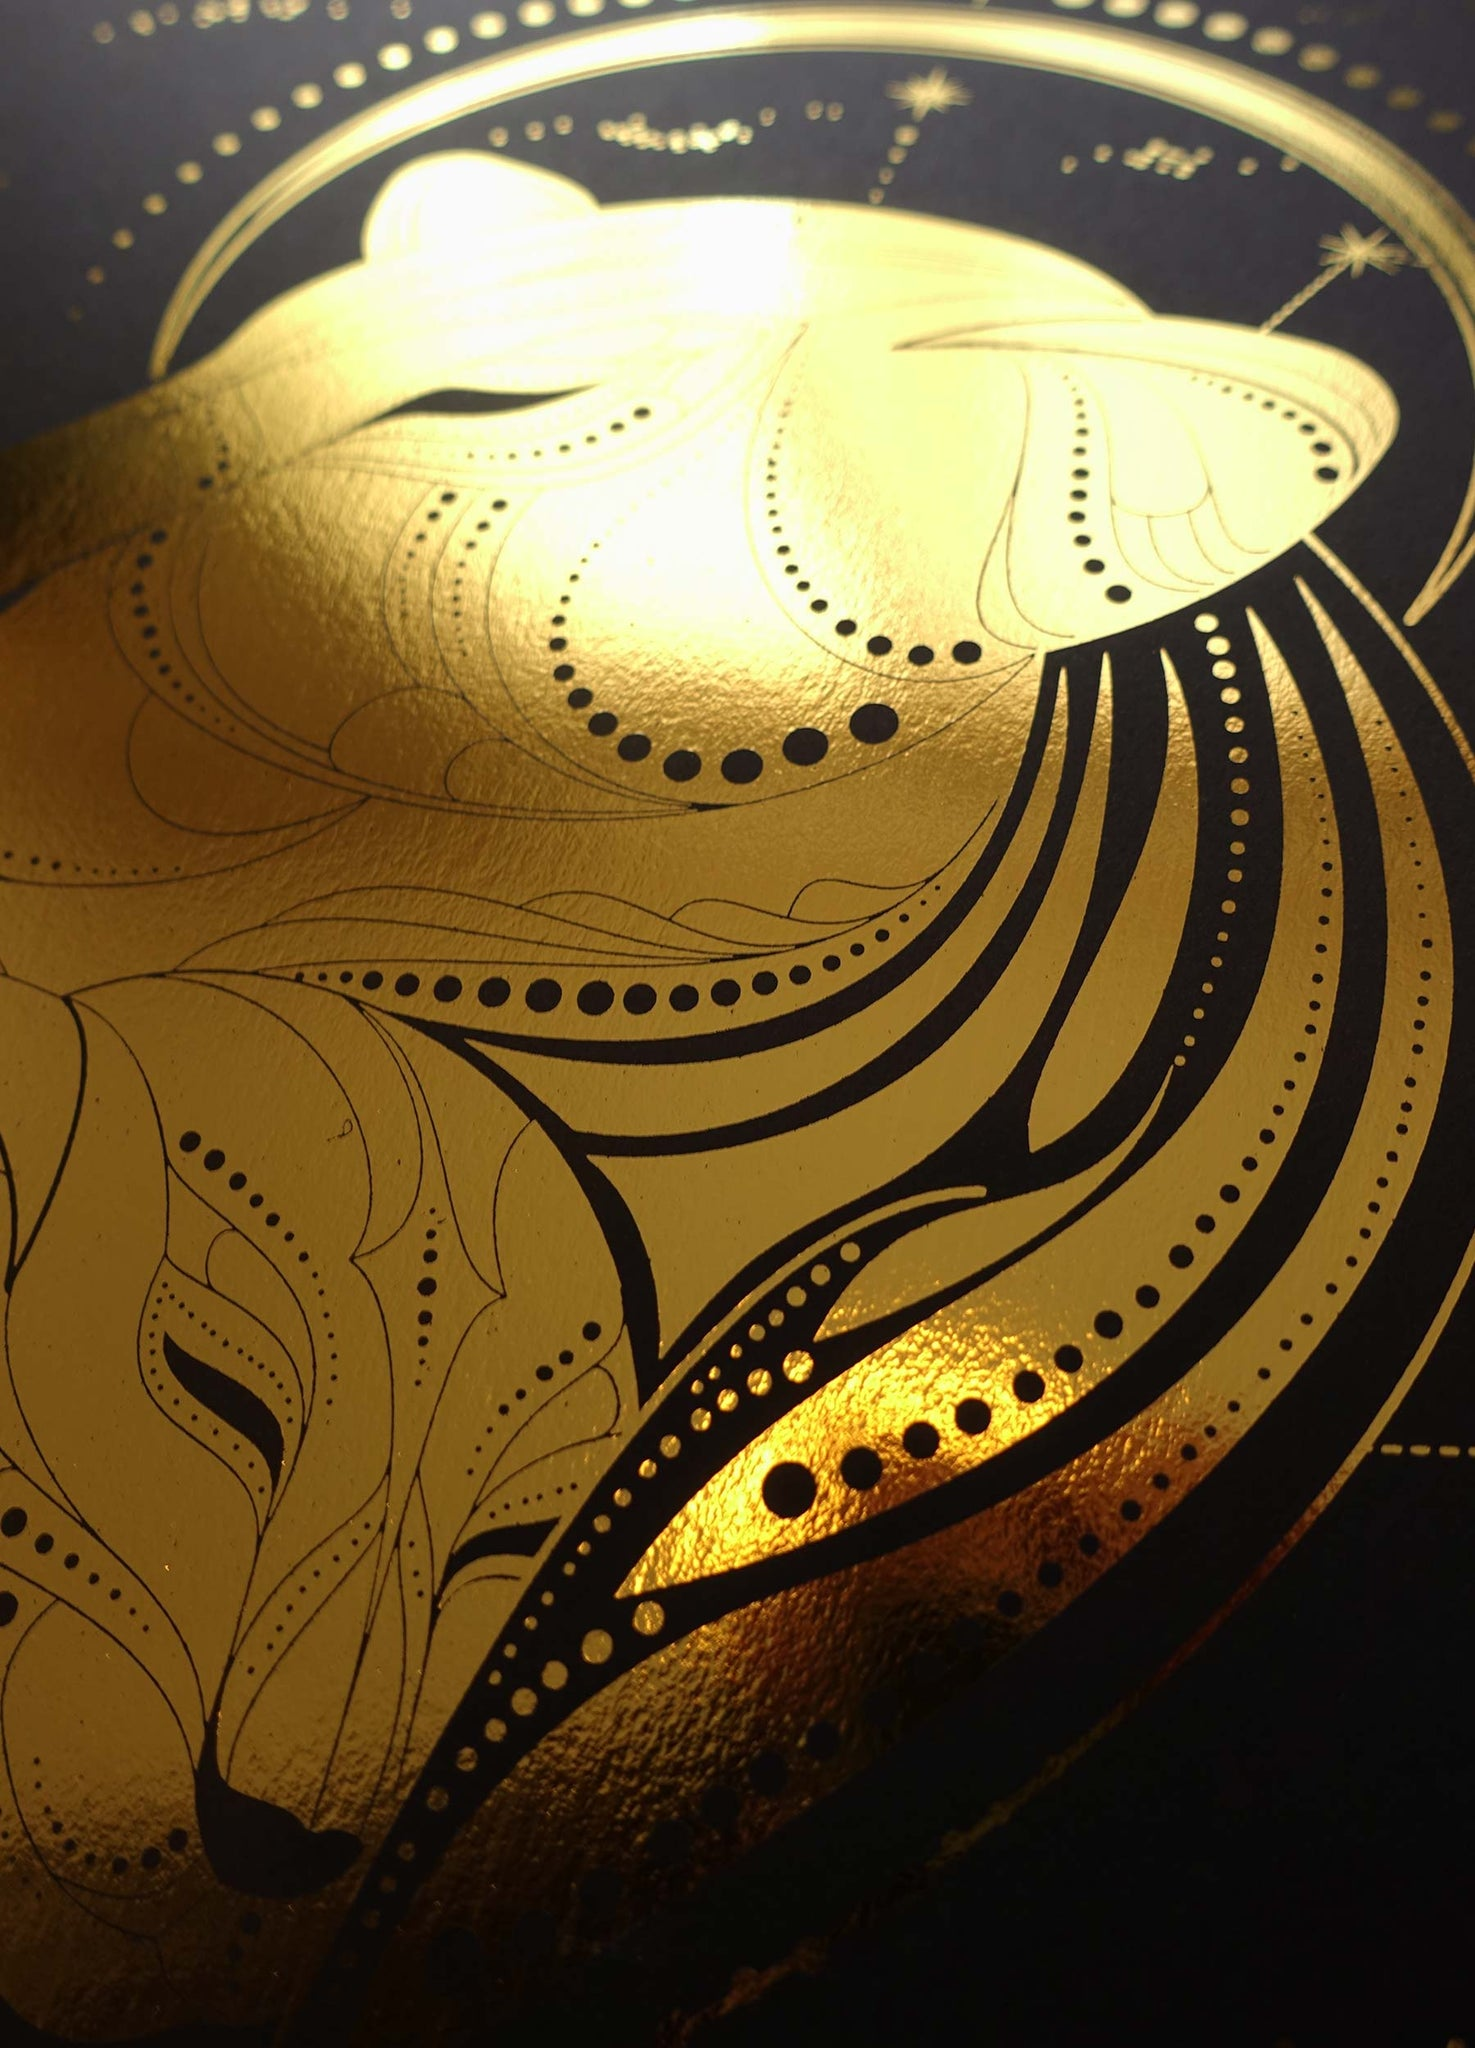 Mother Lion gold foil print on black paper by Cocorrina & Co design studio